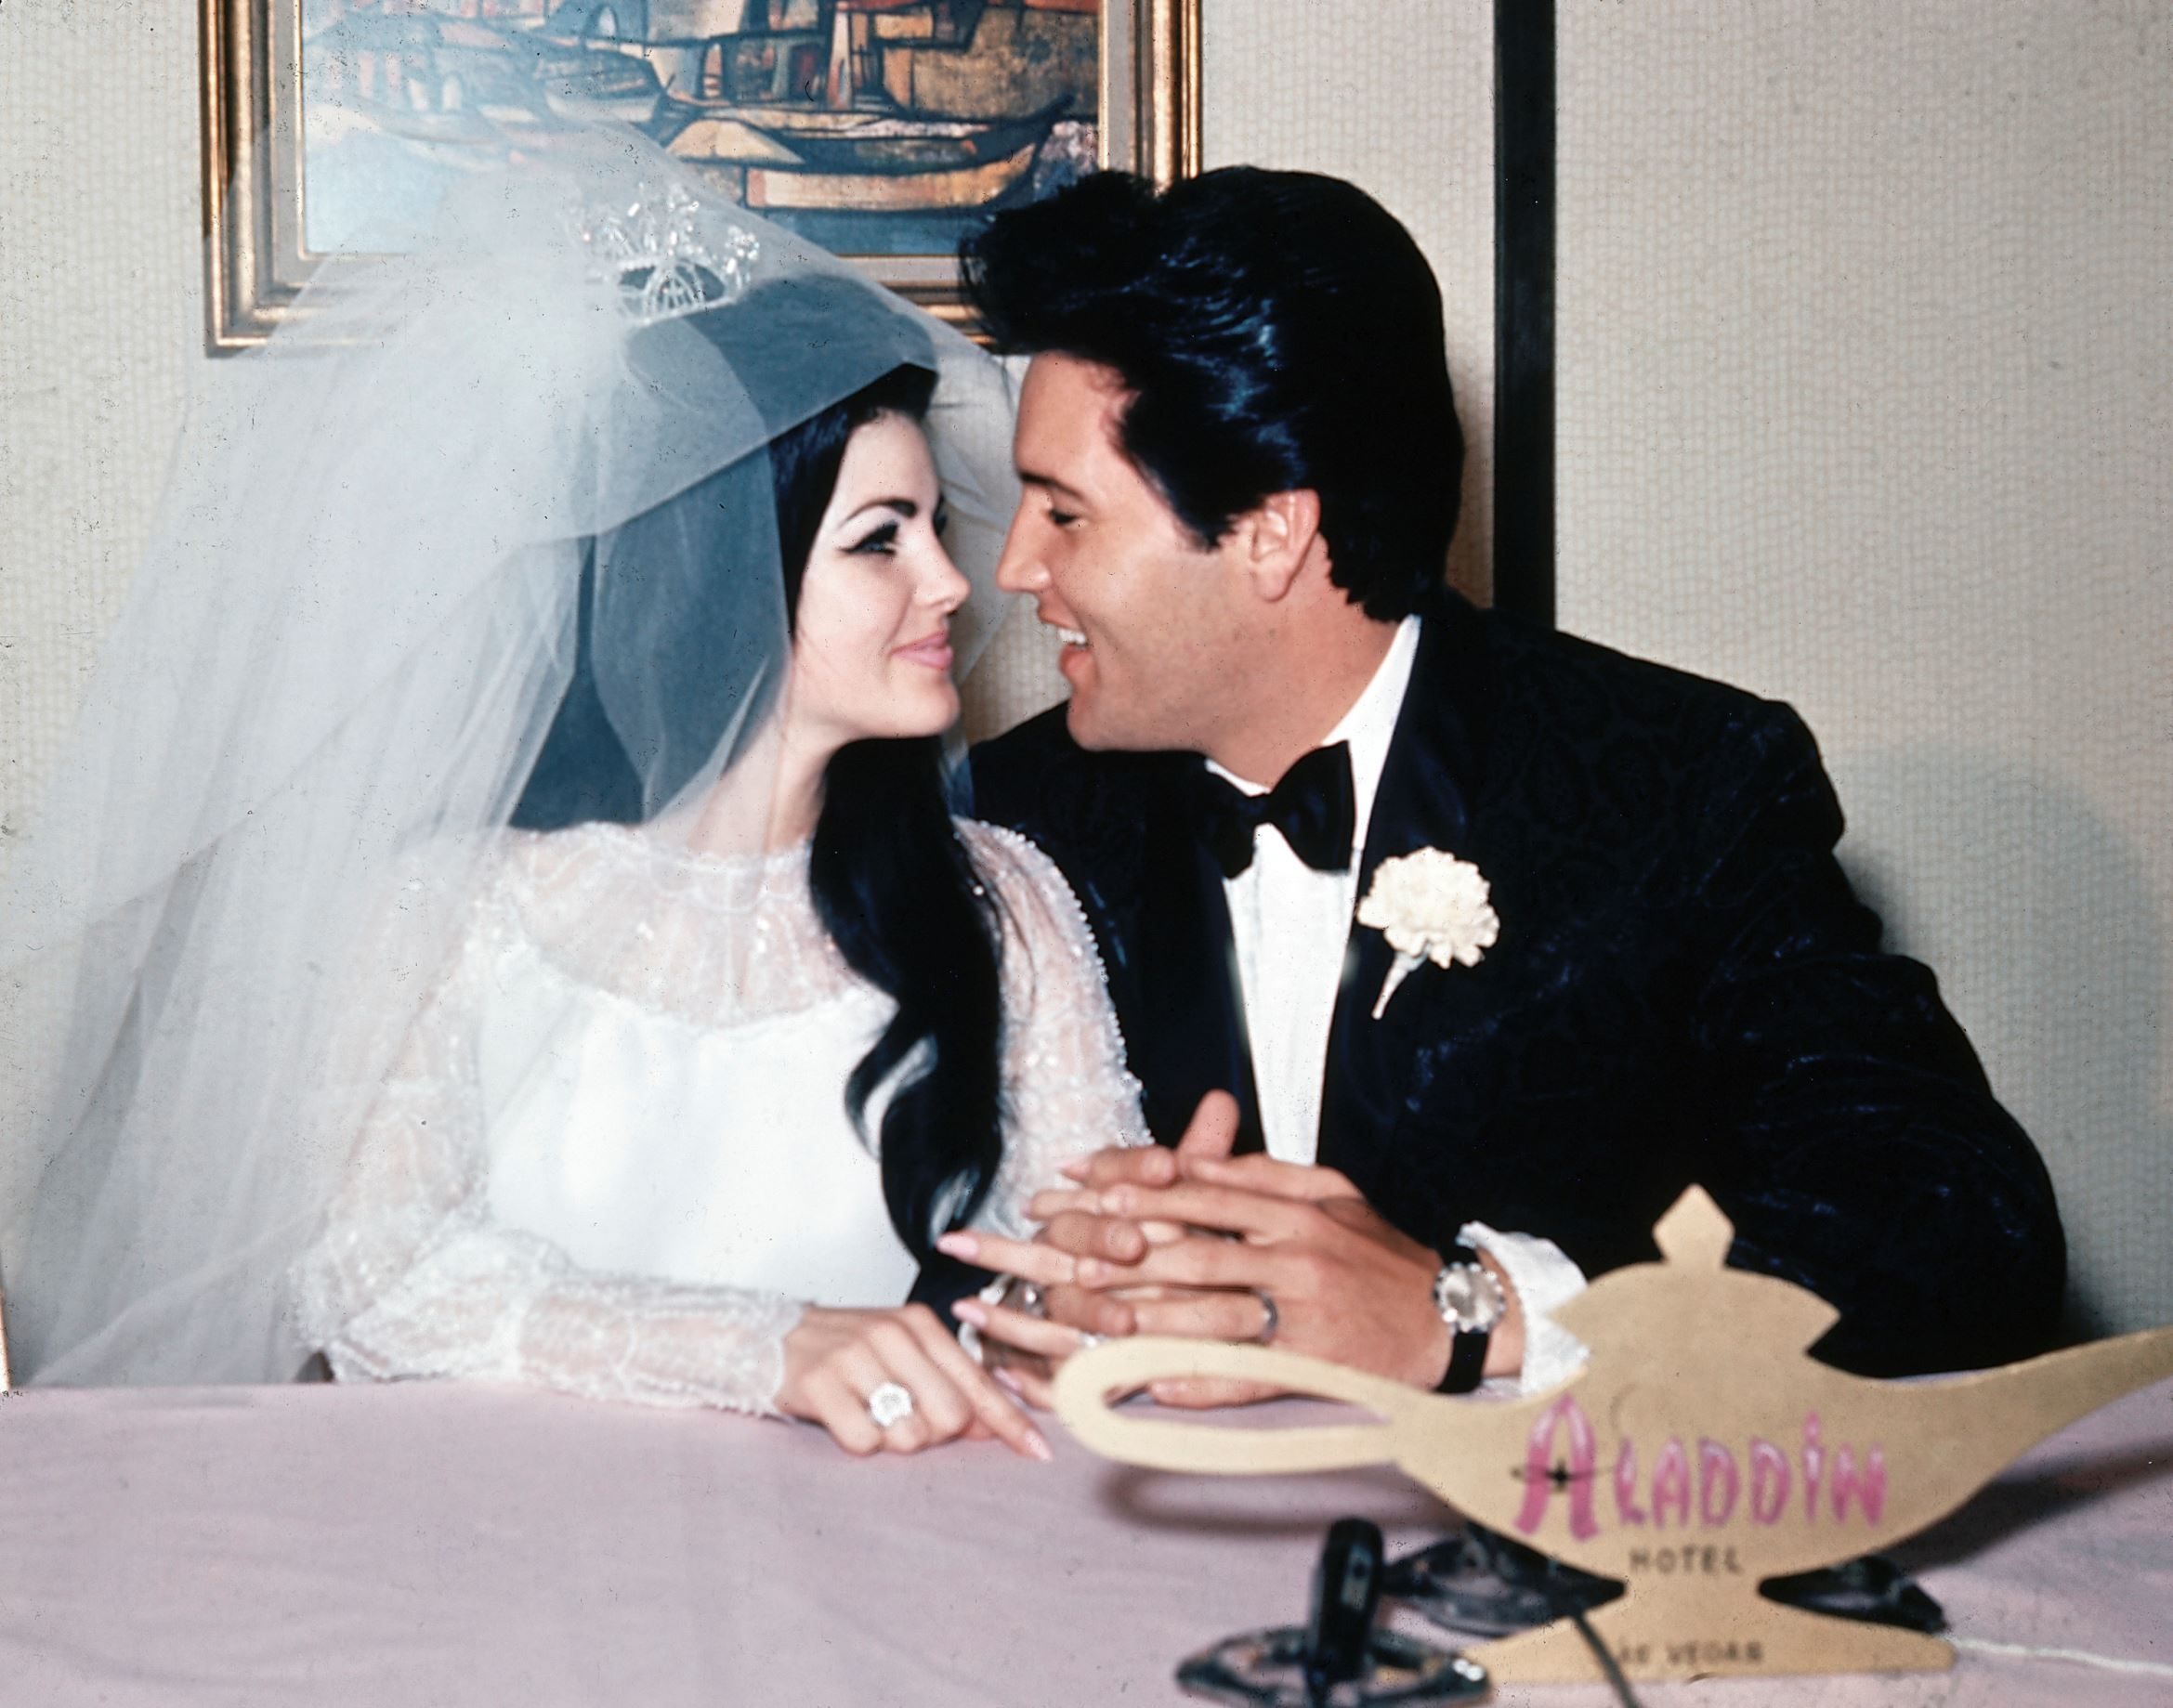 Priscilla presley can still vividly remember one of her favorite